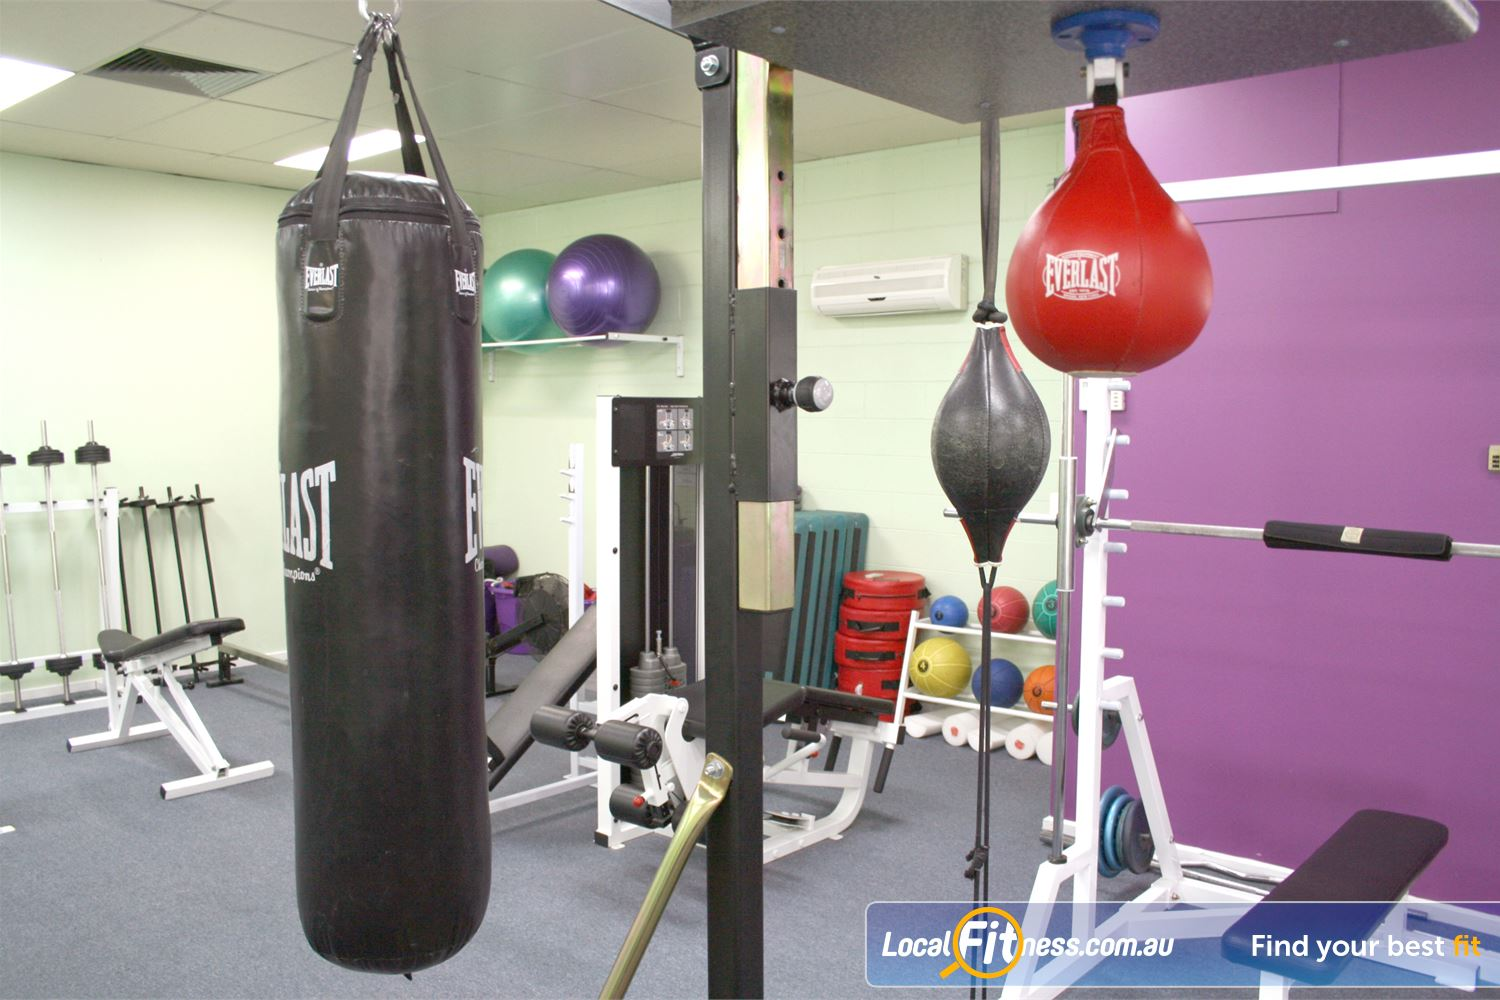 Berry Fitness Centre Edithvale Heavy bag, floor to ceiling ball, speed ball and more.